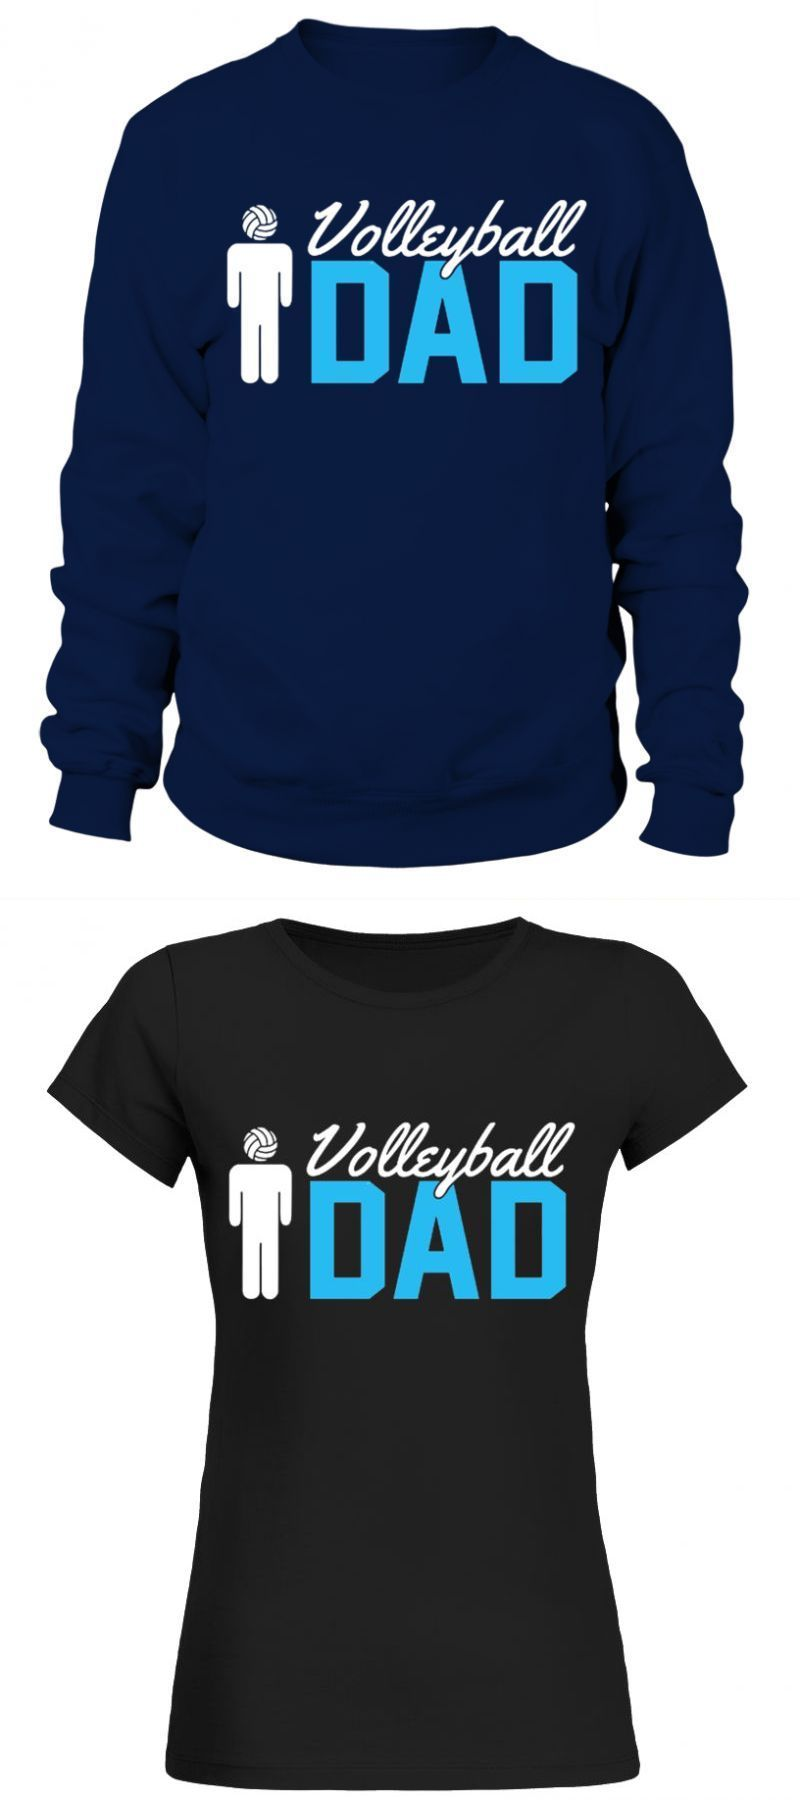 T Shirt Usa Volleyball Volleyball Dad T Shirts Avp Volleyball T Shirt T Shirt Usa Volleyball Dad Shirts Avp Usa Volleyball Volleyball Tshirts Volleyball